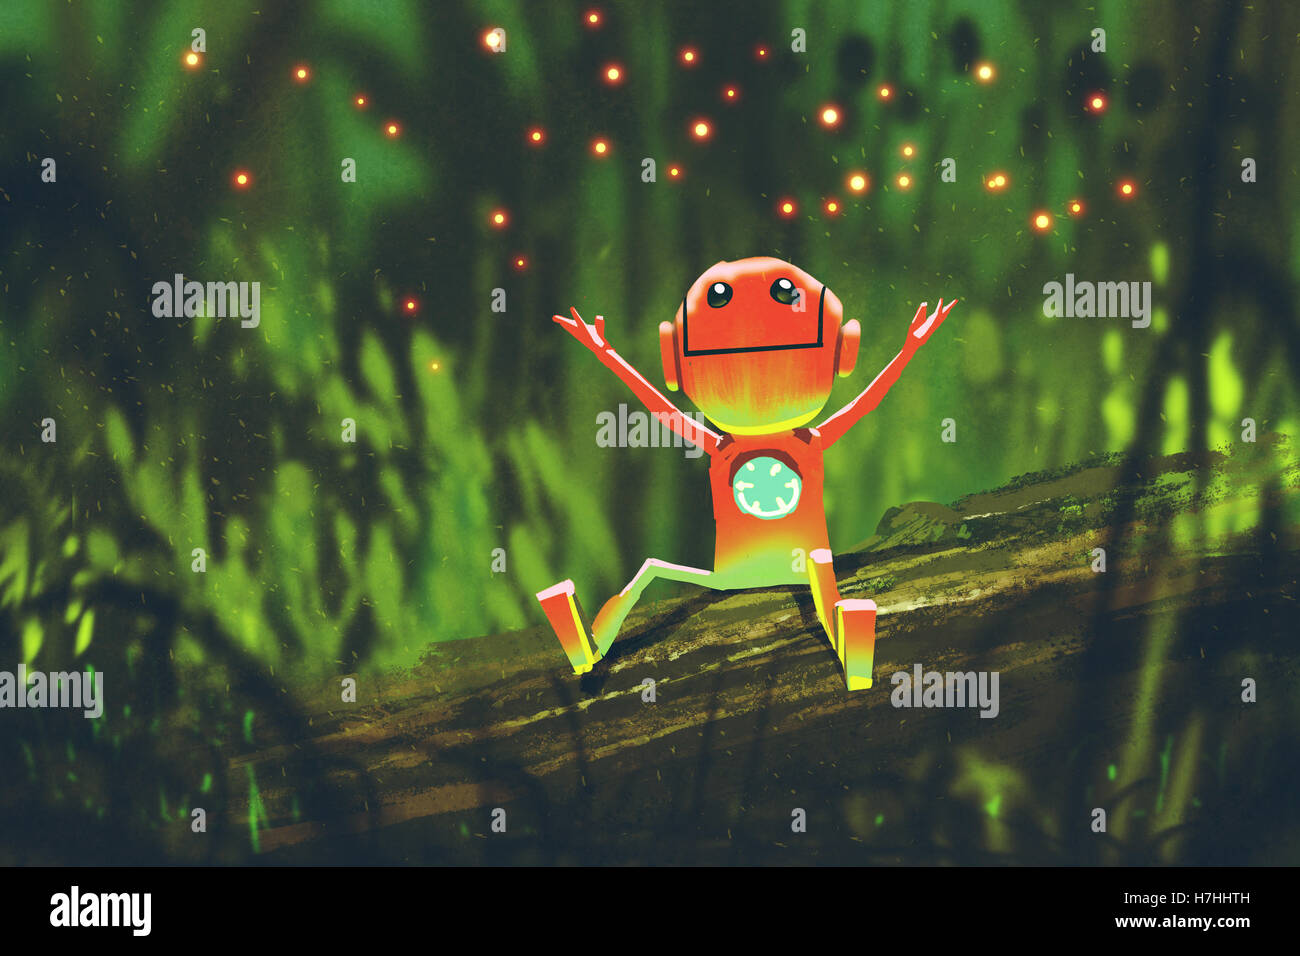 cute robot playing with fireflies in forest at night,illustration painting - Stock Image